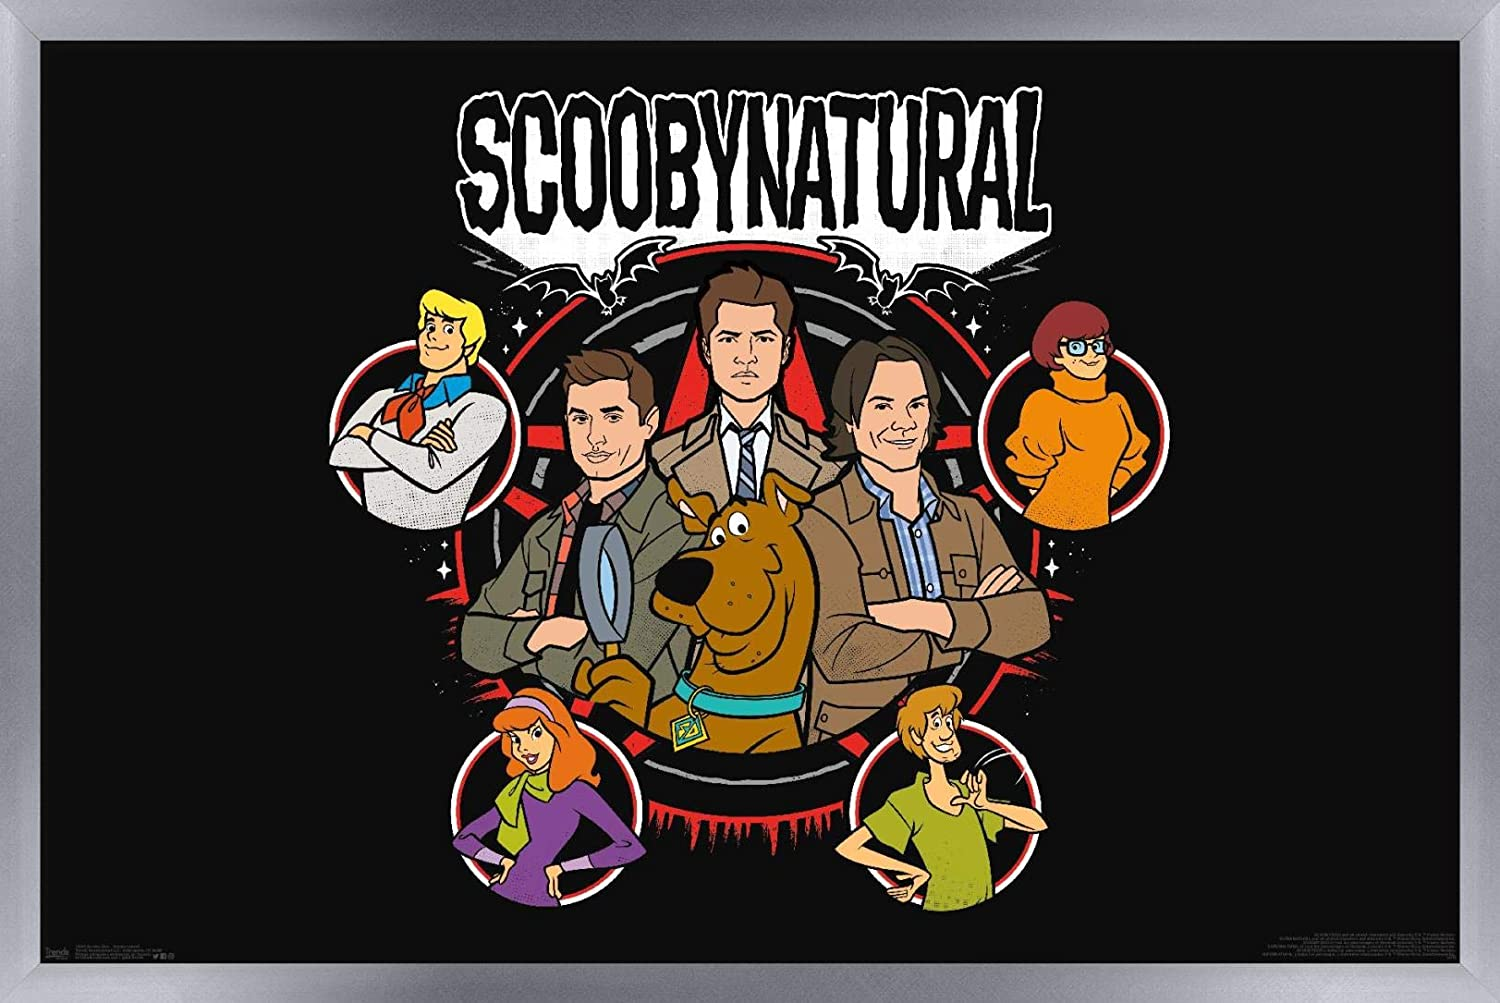 Trends Chicago Mall International Scooby-Doo - Scoobynatural Wall 22. Online limited product Poster